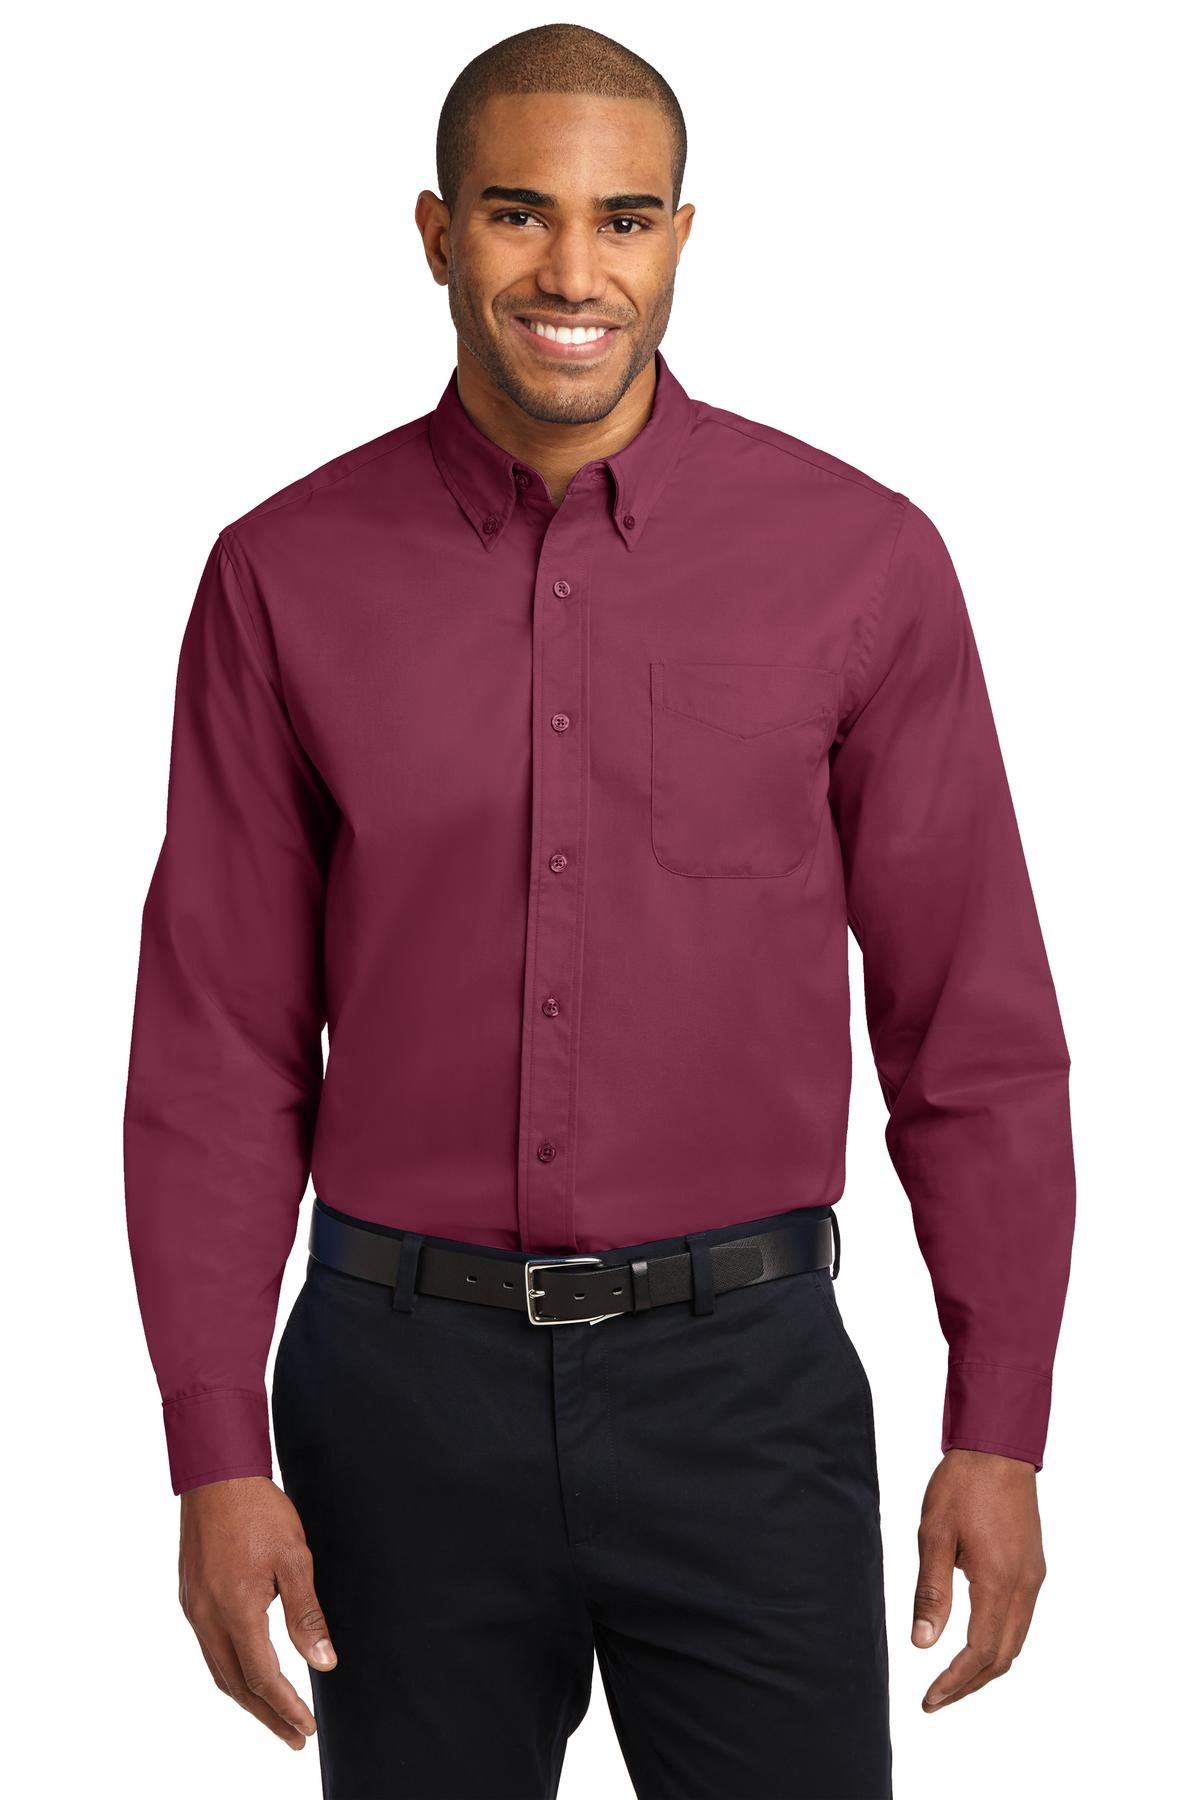 Rich Red Port Authority SuperPro Twill Shirt.